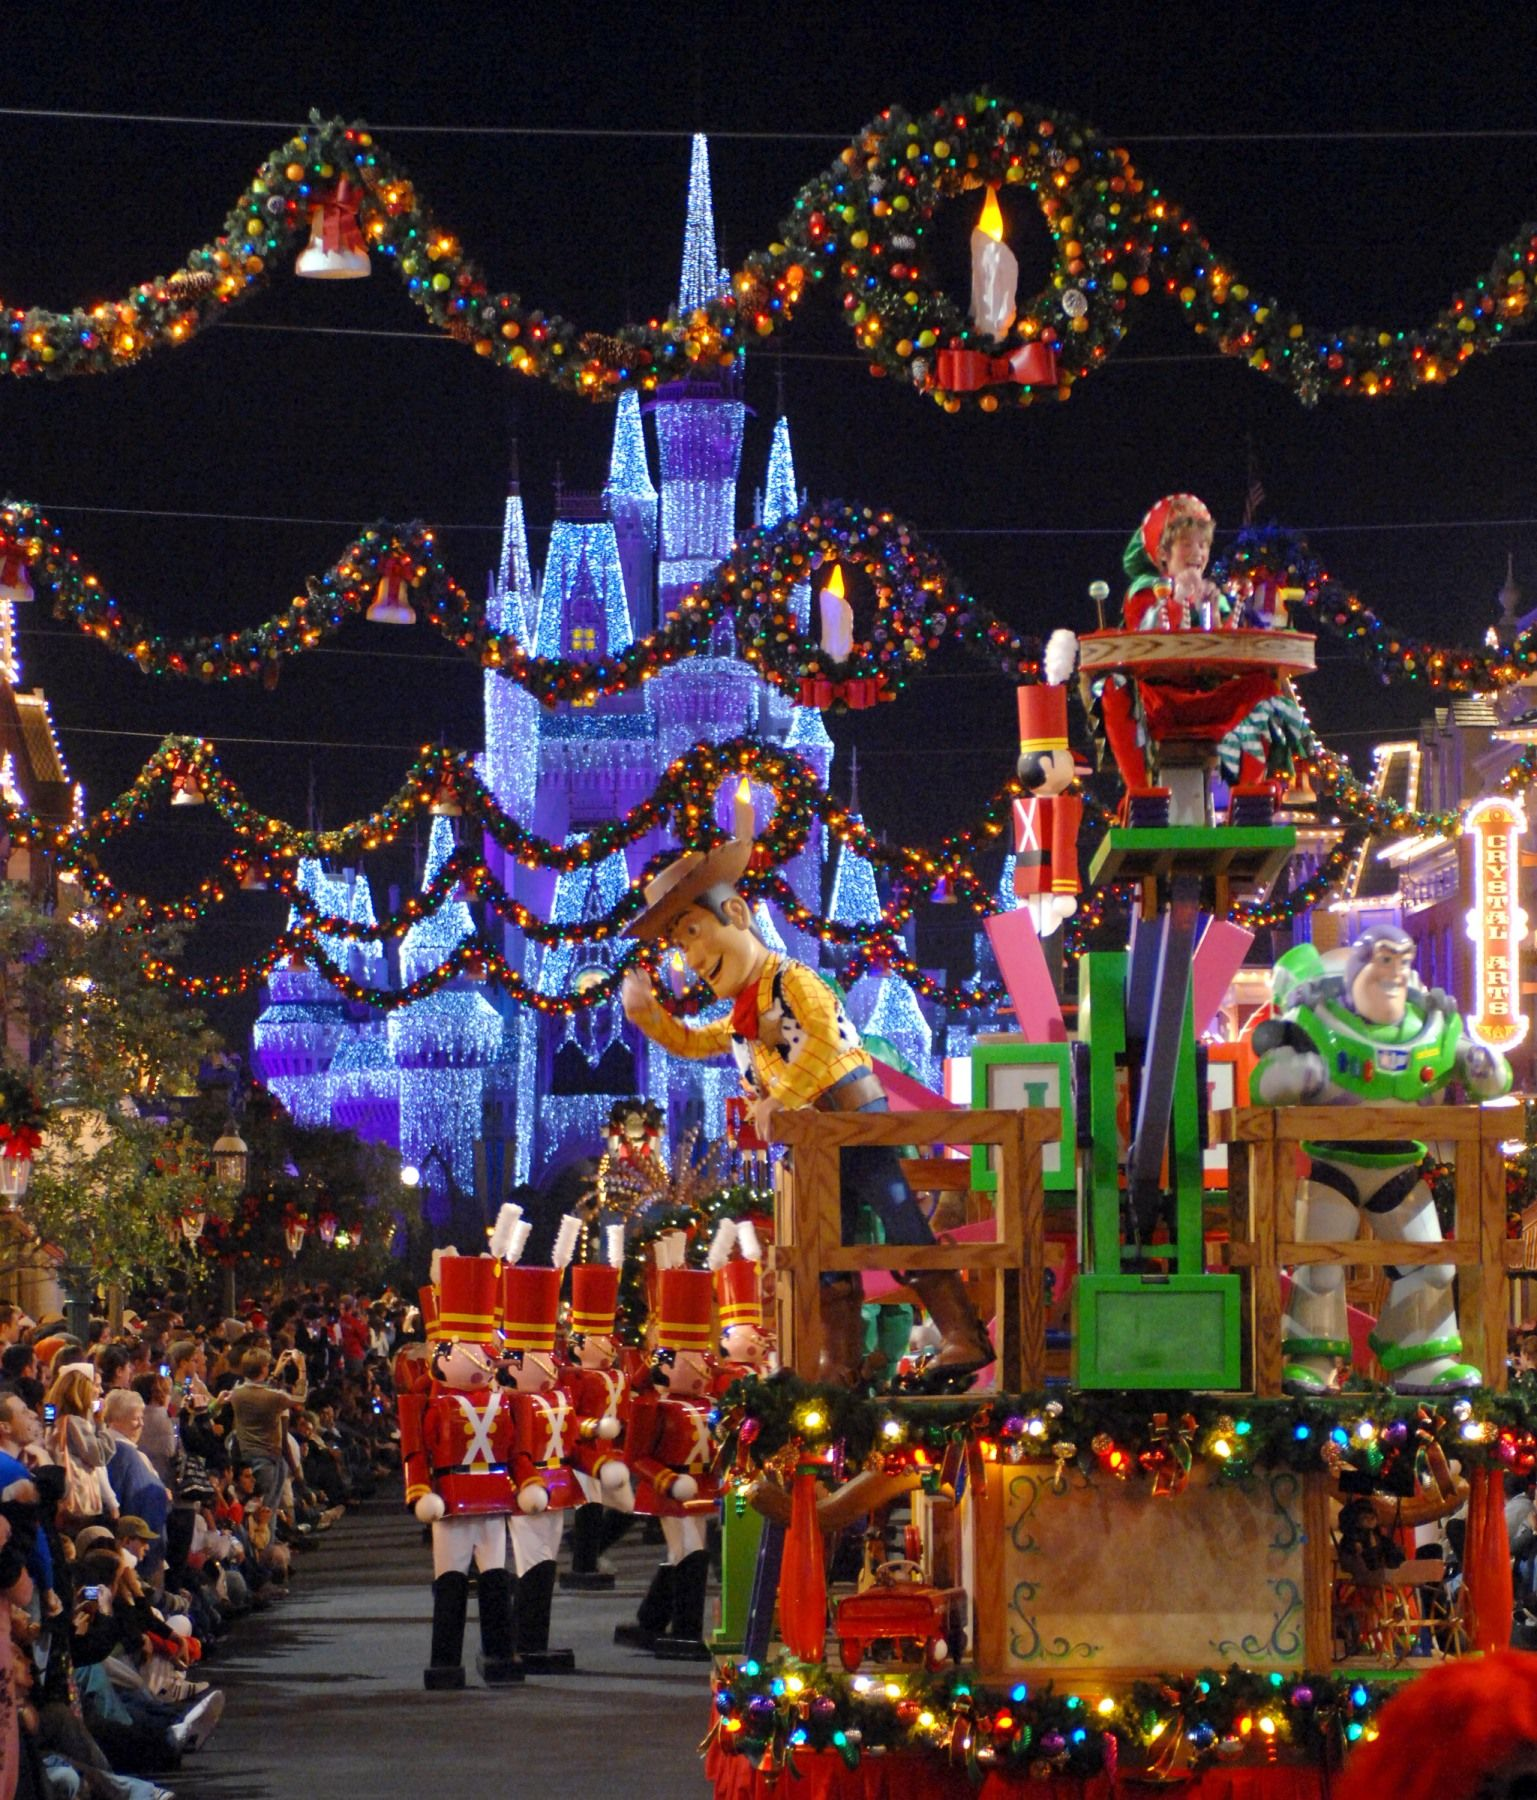 christmas parade down main st usa in magic kingdom facebookcompixietrips